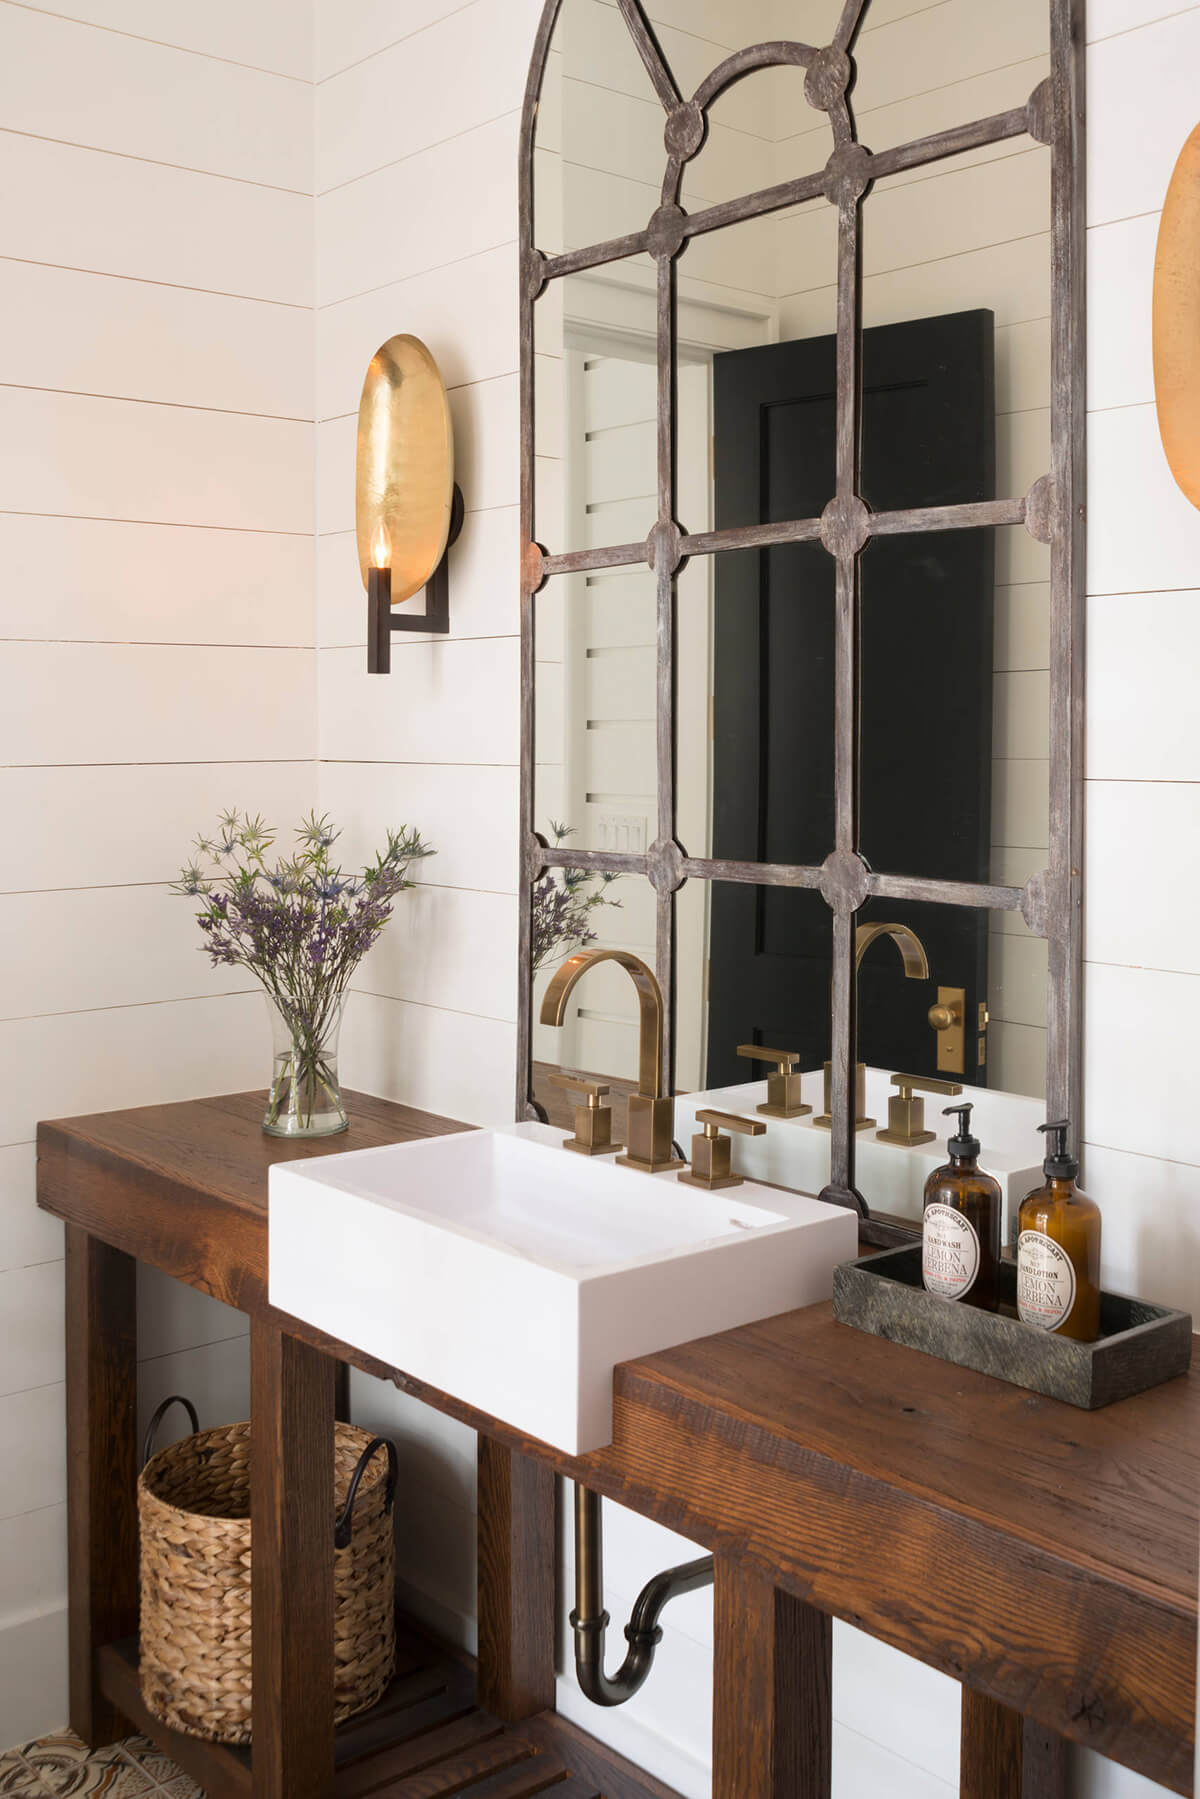 Mullioned Window Mirror over a Farmhouse Sink